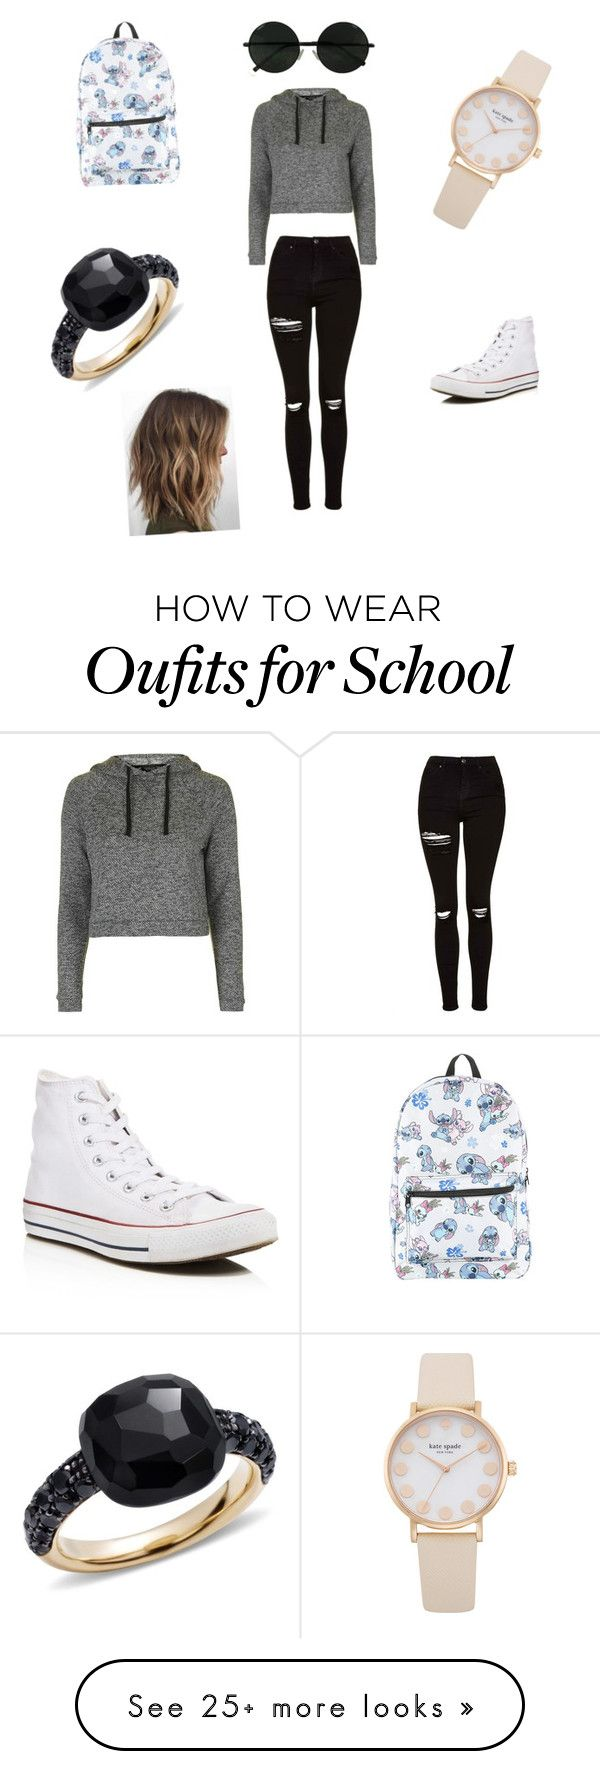 """""""First day of school kind of outfit"""" by nadia-duran14 on Polyvore featuring Topshop, Converse, Disney and Pomellato"""